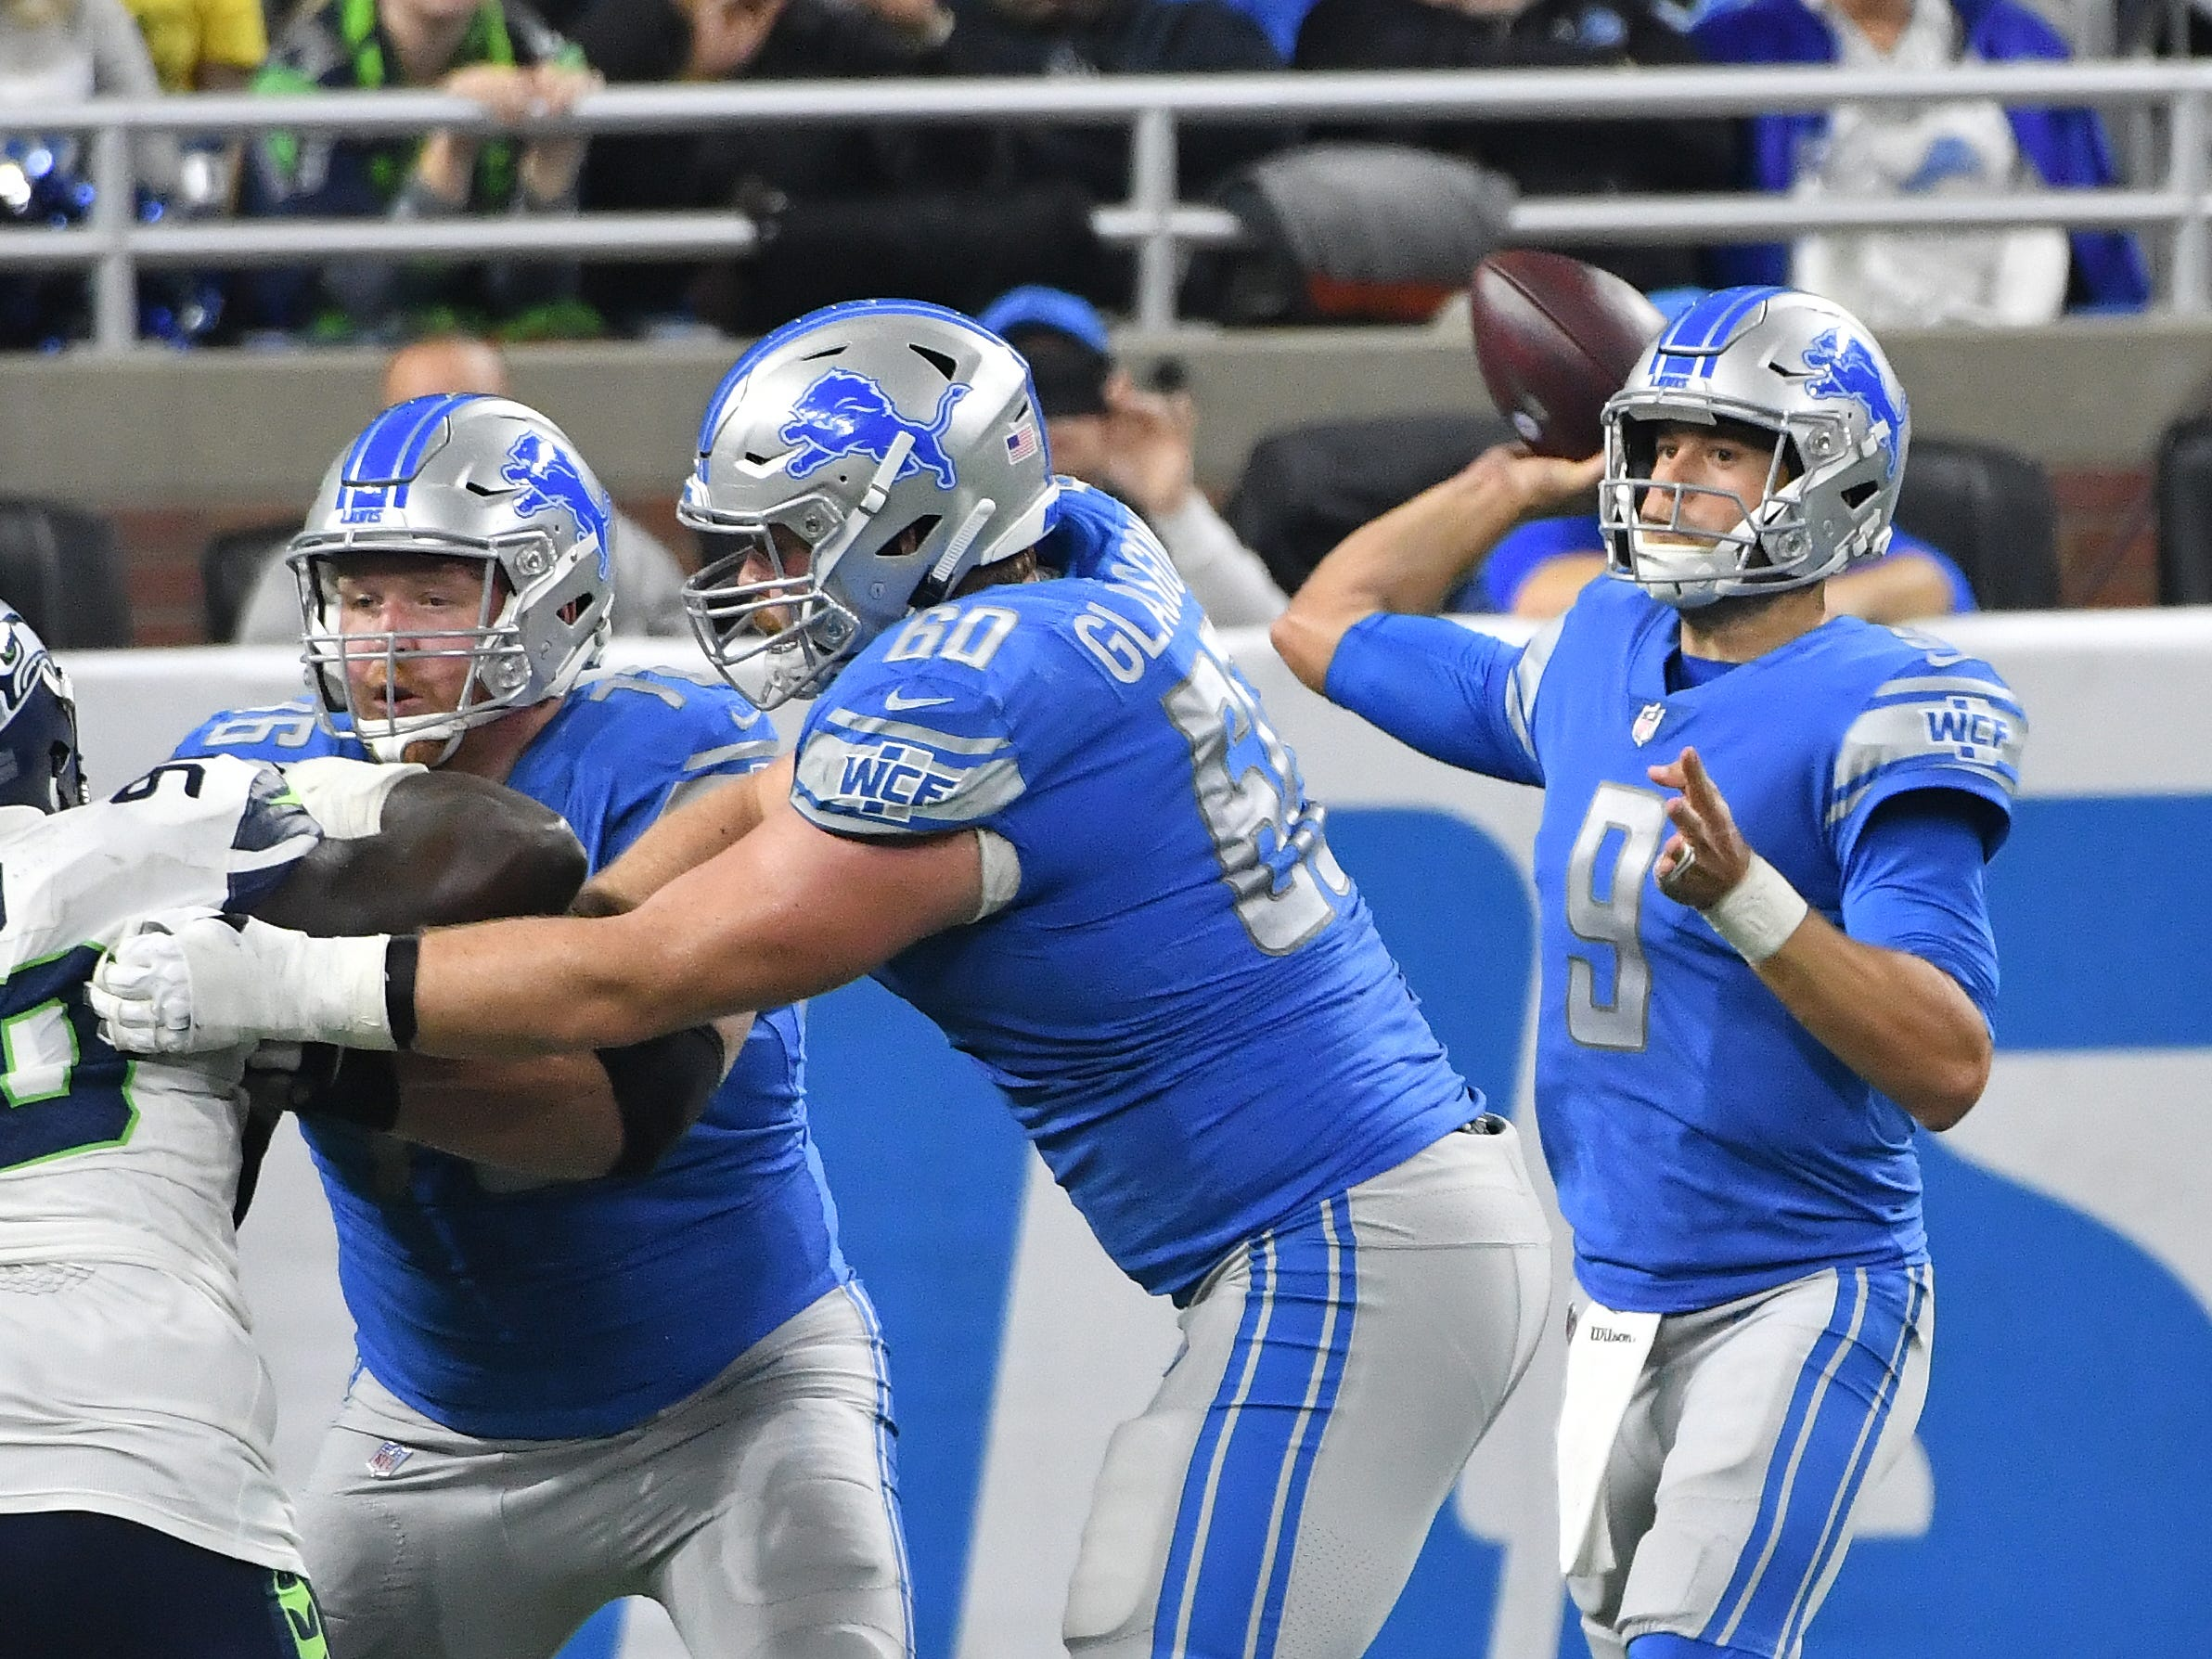 Lions quarterback Matthew Stafford throws with offensive linemen T.J. Lang and Graham Glasgow blocking in the fourth quarter.